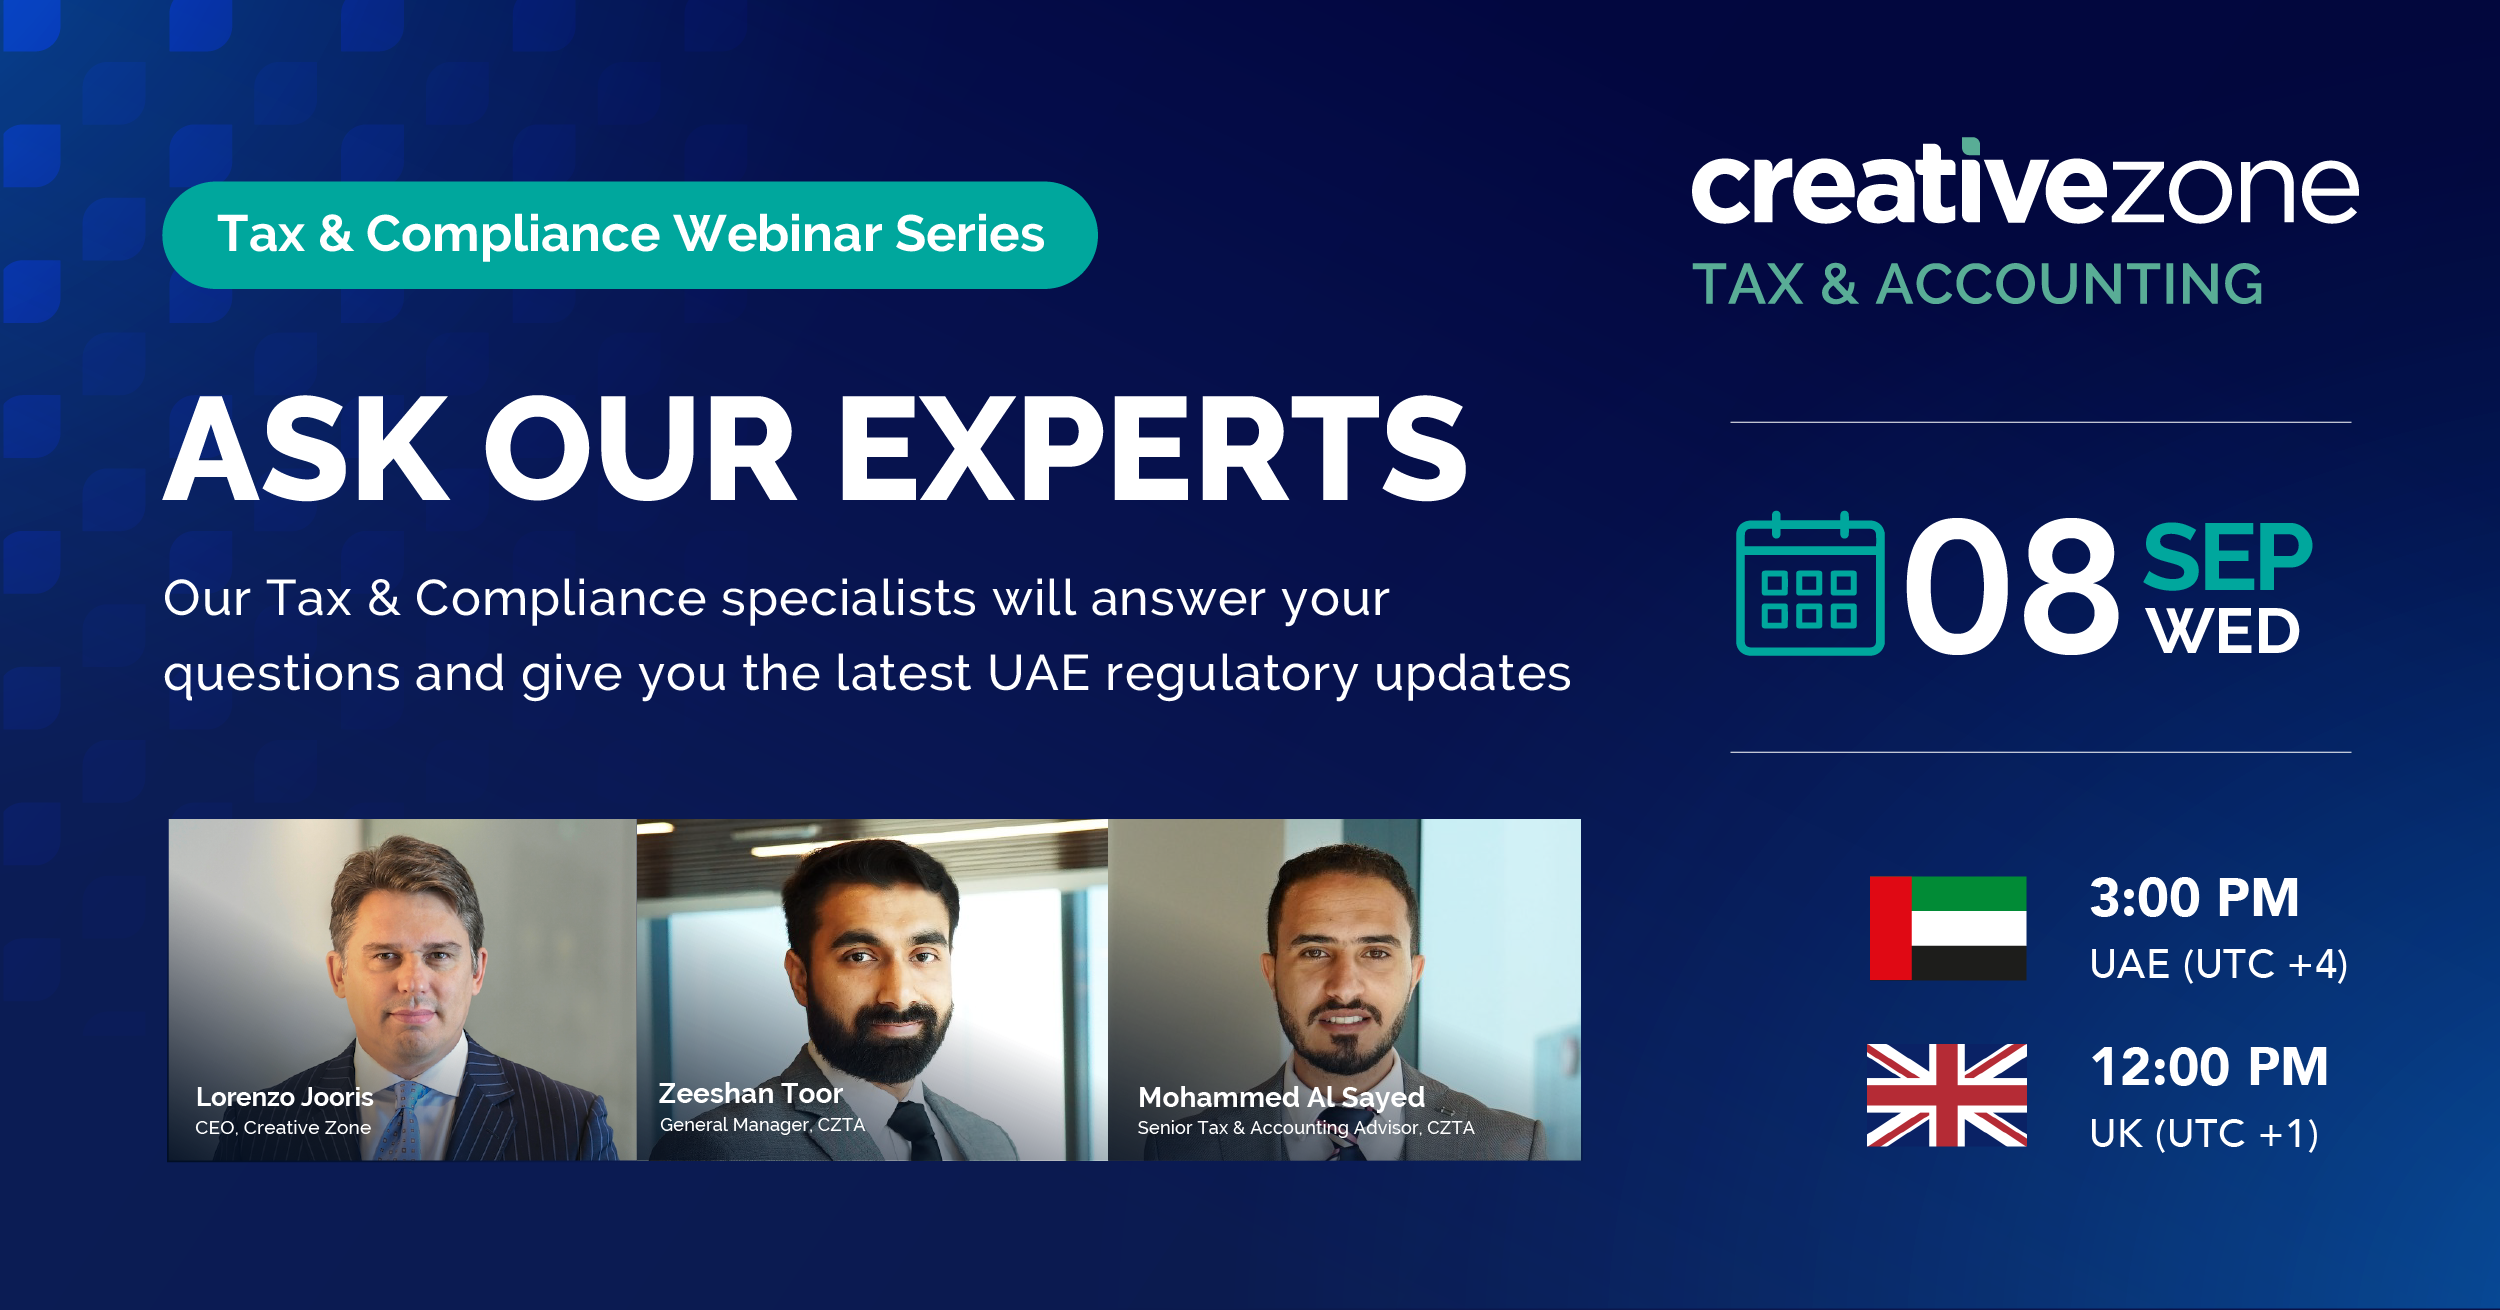 Creative Zone - Ask Our Experts: Tax & Compliance Webinar Series